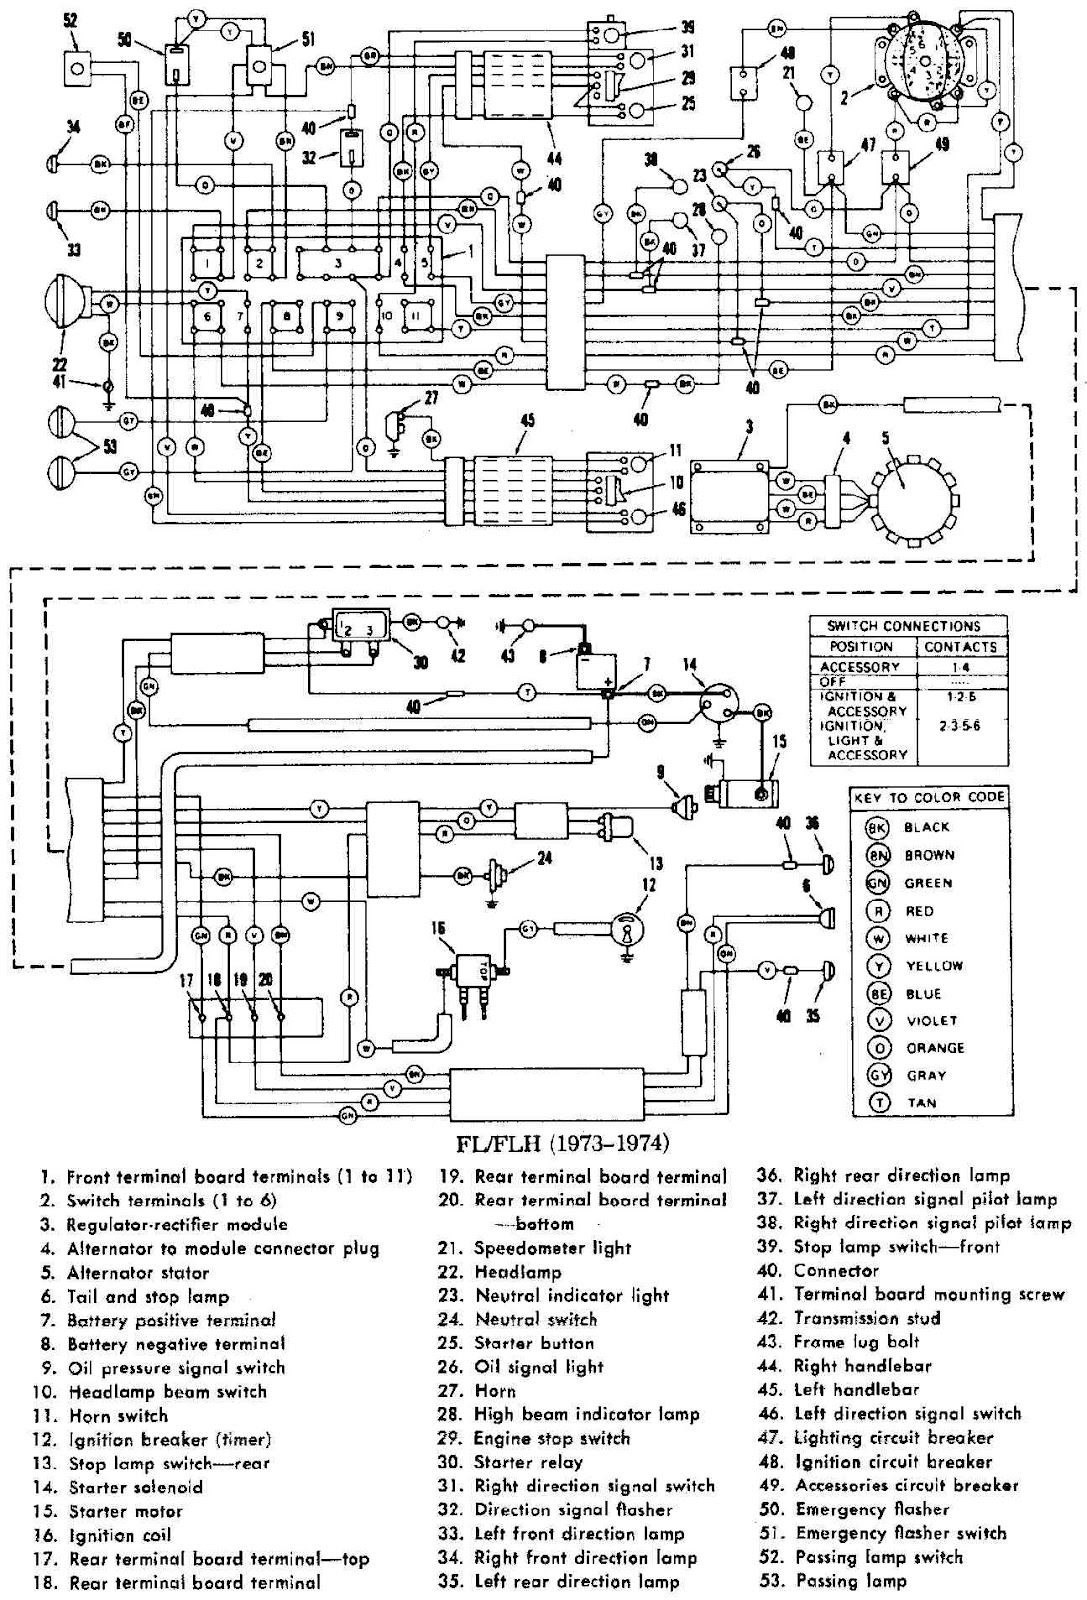 [DIAGRAM_5LK]  DIAGRAM] Harley Davidson Flh Wiring Diagram FULL Version HD Quality Wiring  Diagram - EVOLVEGARDENDIAGRAM.K-DANSE.FR | Wiring Diagram For A 1975 Harley Davidson Flh |  | K-danse.fr